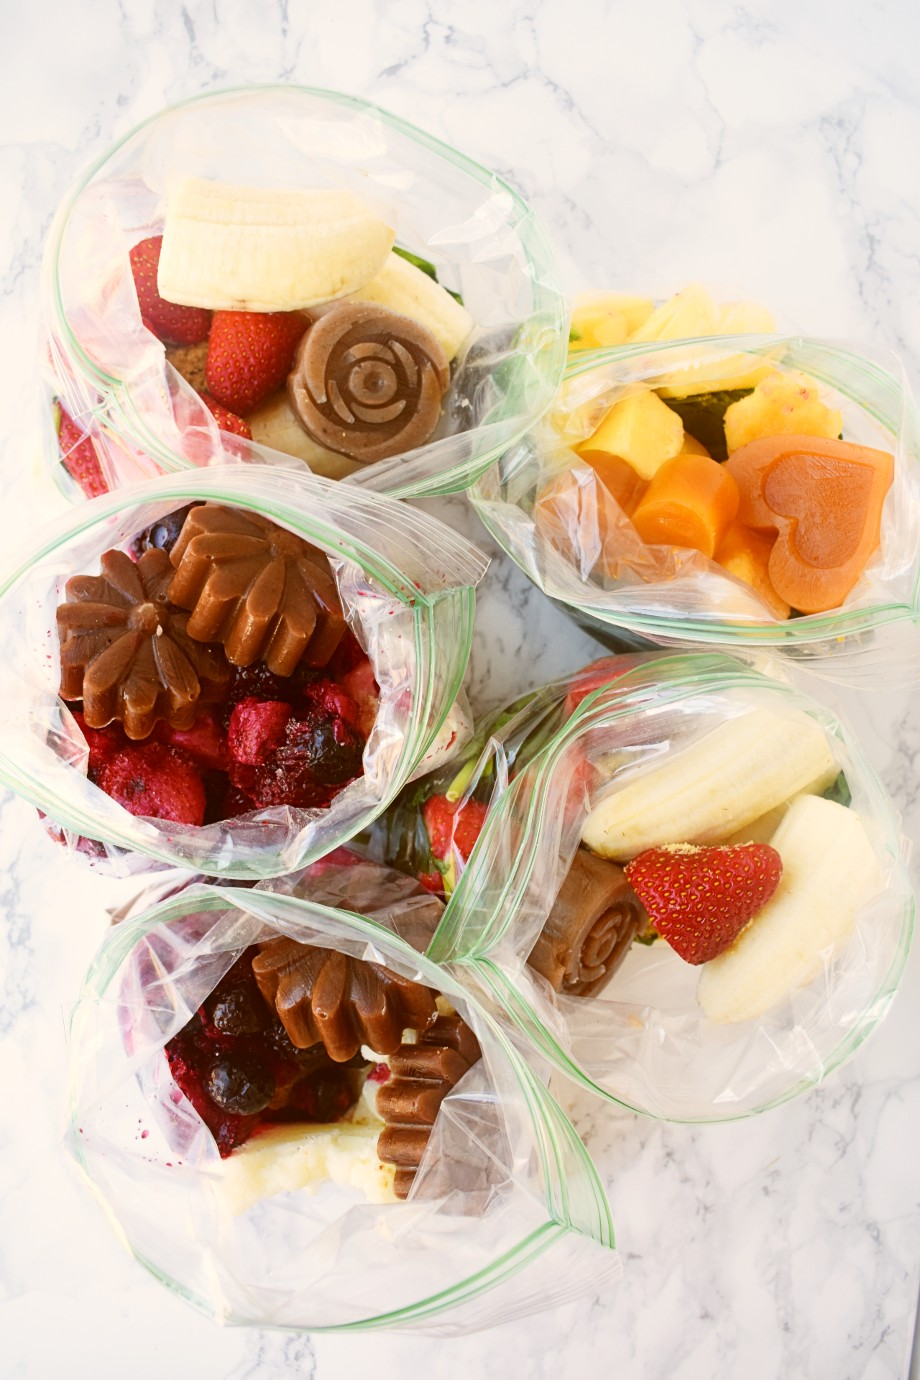 Fruit and Vegetable Smoothie Packs